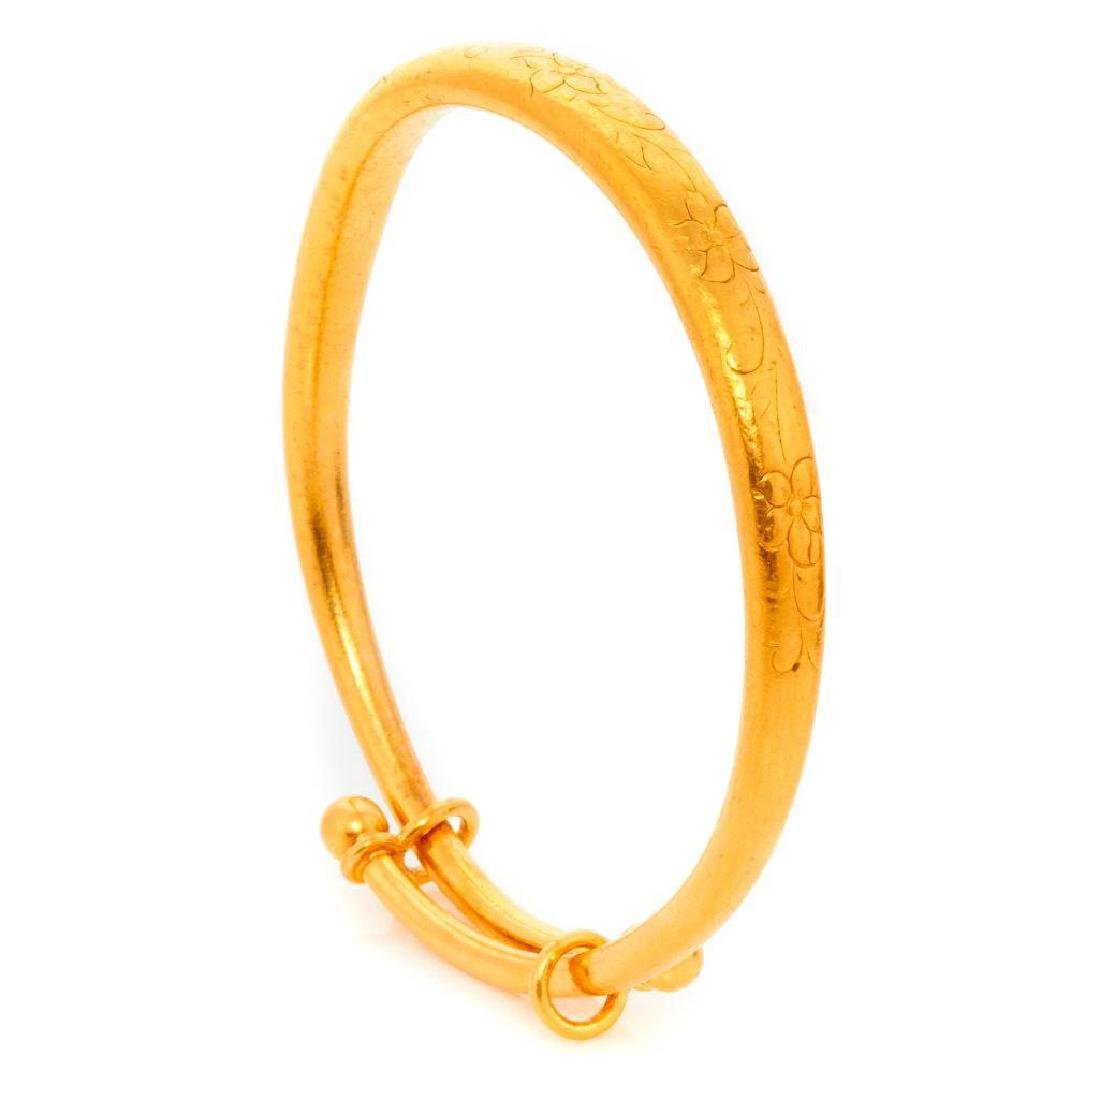 Chinese high karat gold bangle bracelet